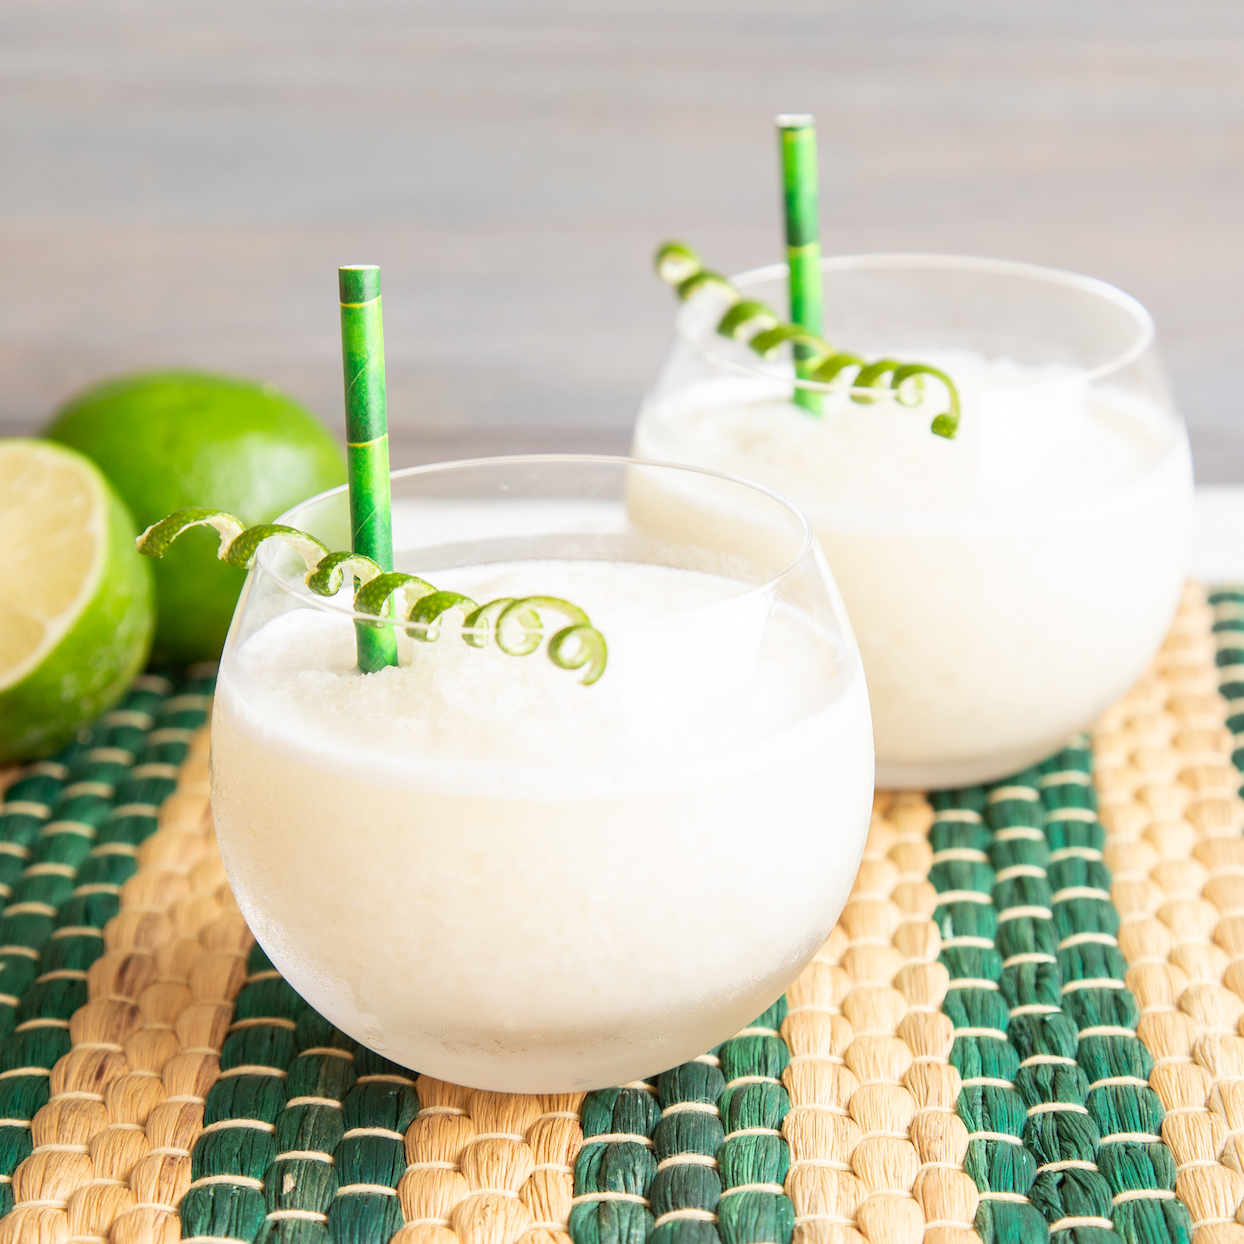 This whipped frozen limeade is a blast from the past--but much better for you! It's got the nostalgic taste of a lemon-lime slushie, and this time it's made with real lime juice and fresh, homemade syrup. Just a splash of dairy is enough to evoke the creaminess of vanilla soft serve mixed with the cool and tangy iced slush. Or use coconut milk creamer for a tropical twist. Source: EatingWell.com, July 2020